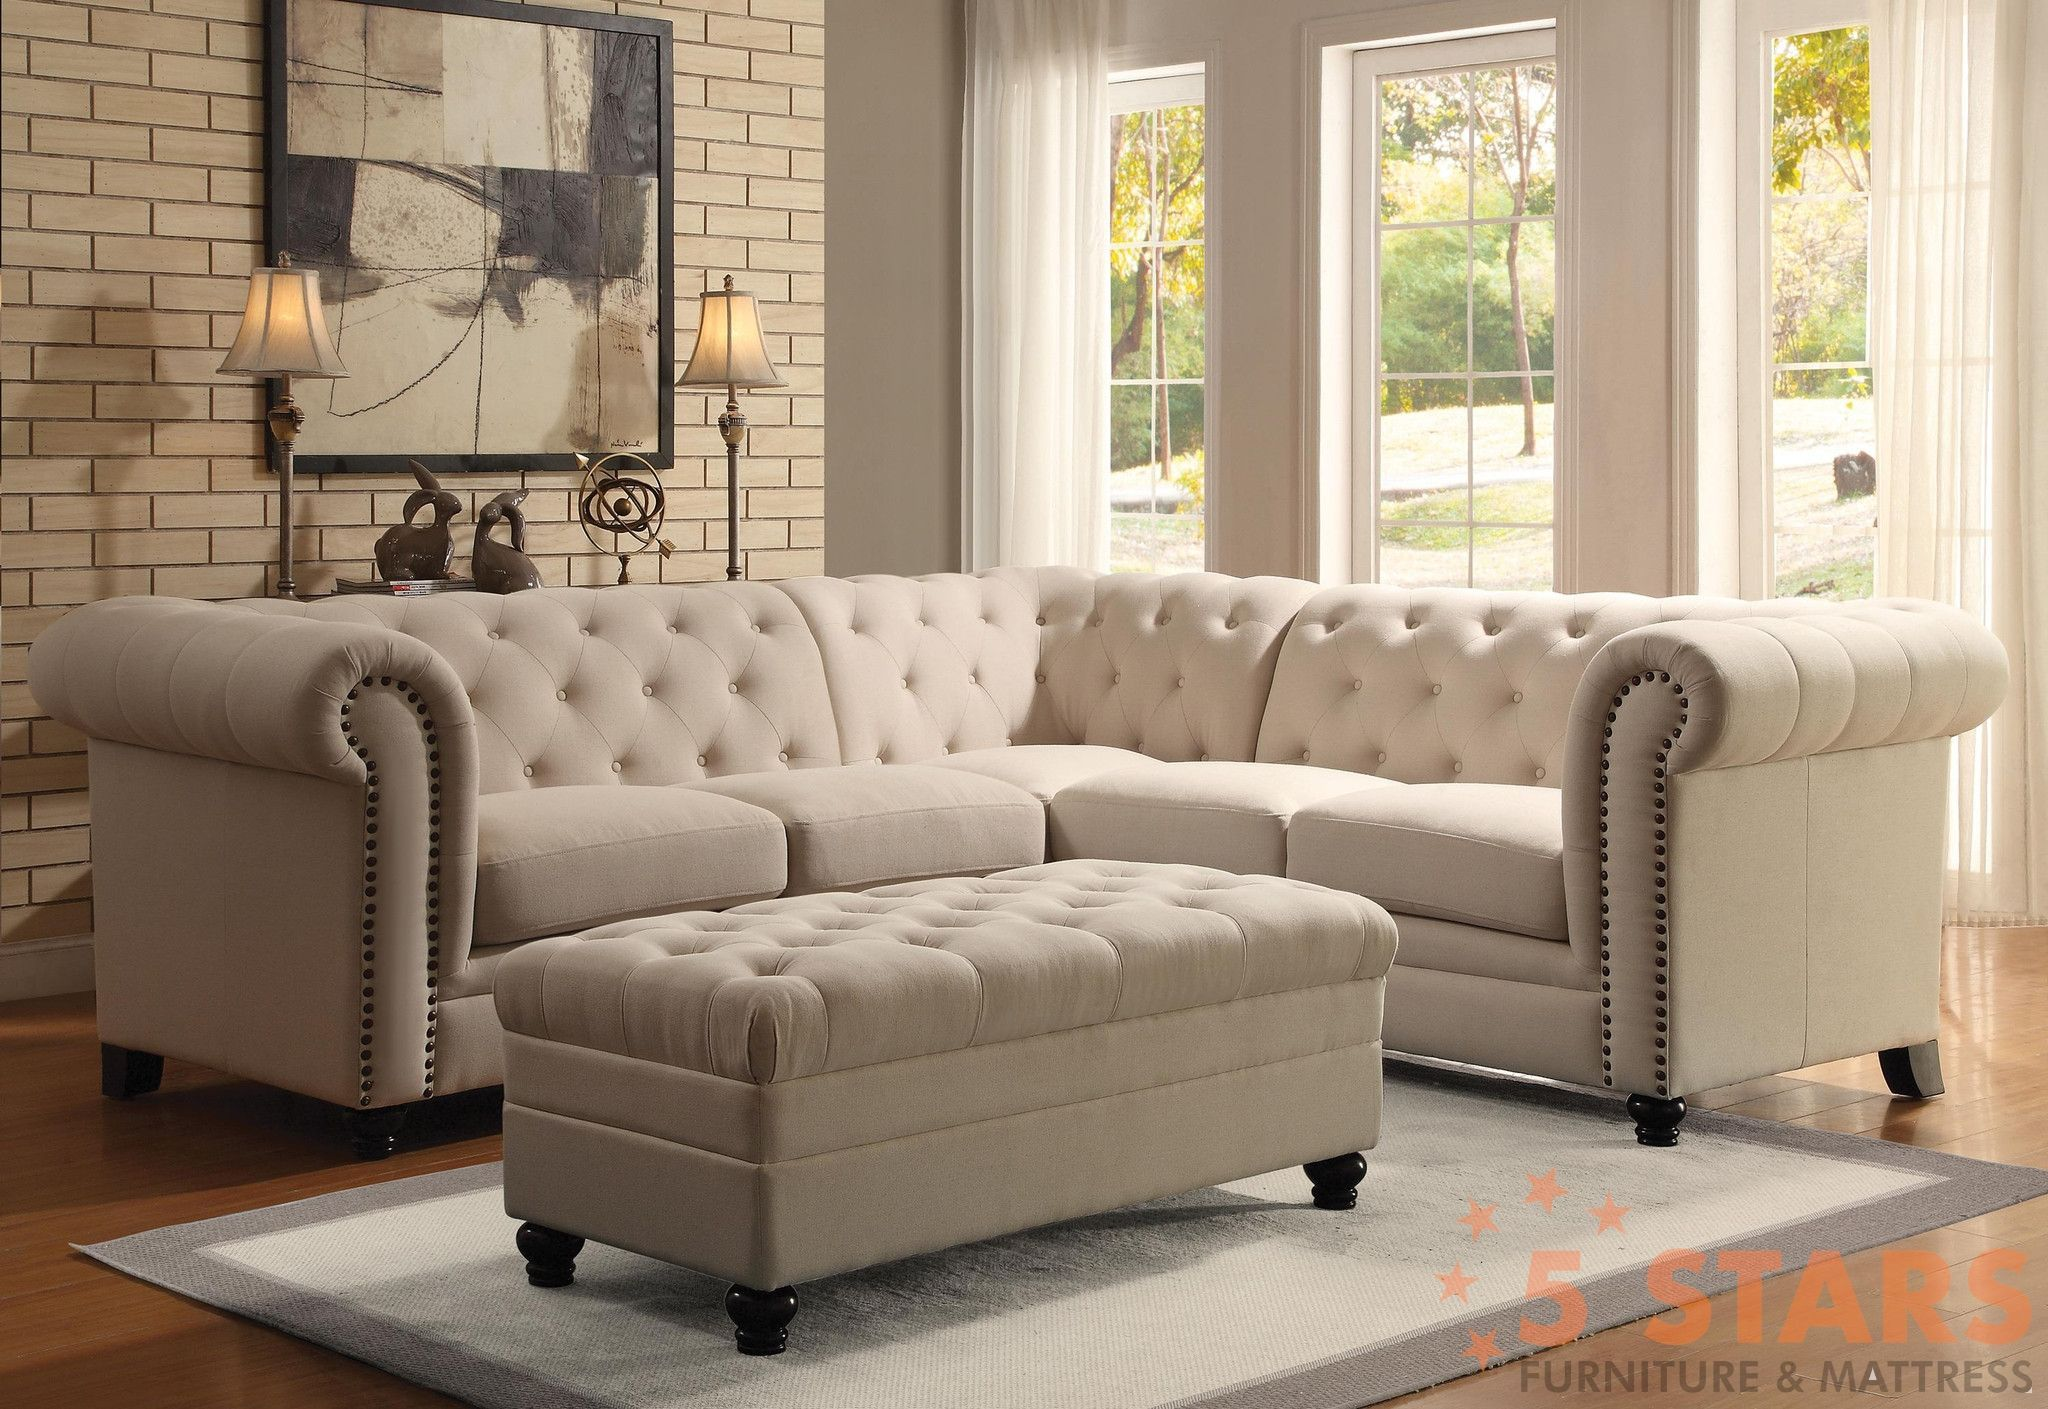 Modern Living Room Leather Sectional Sofas In 2020 Tufted Sectional Sofa Sectional Furniture Furniture